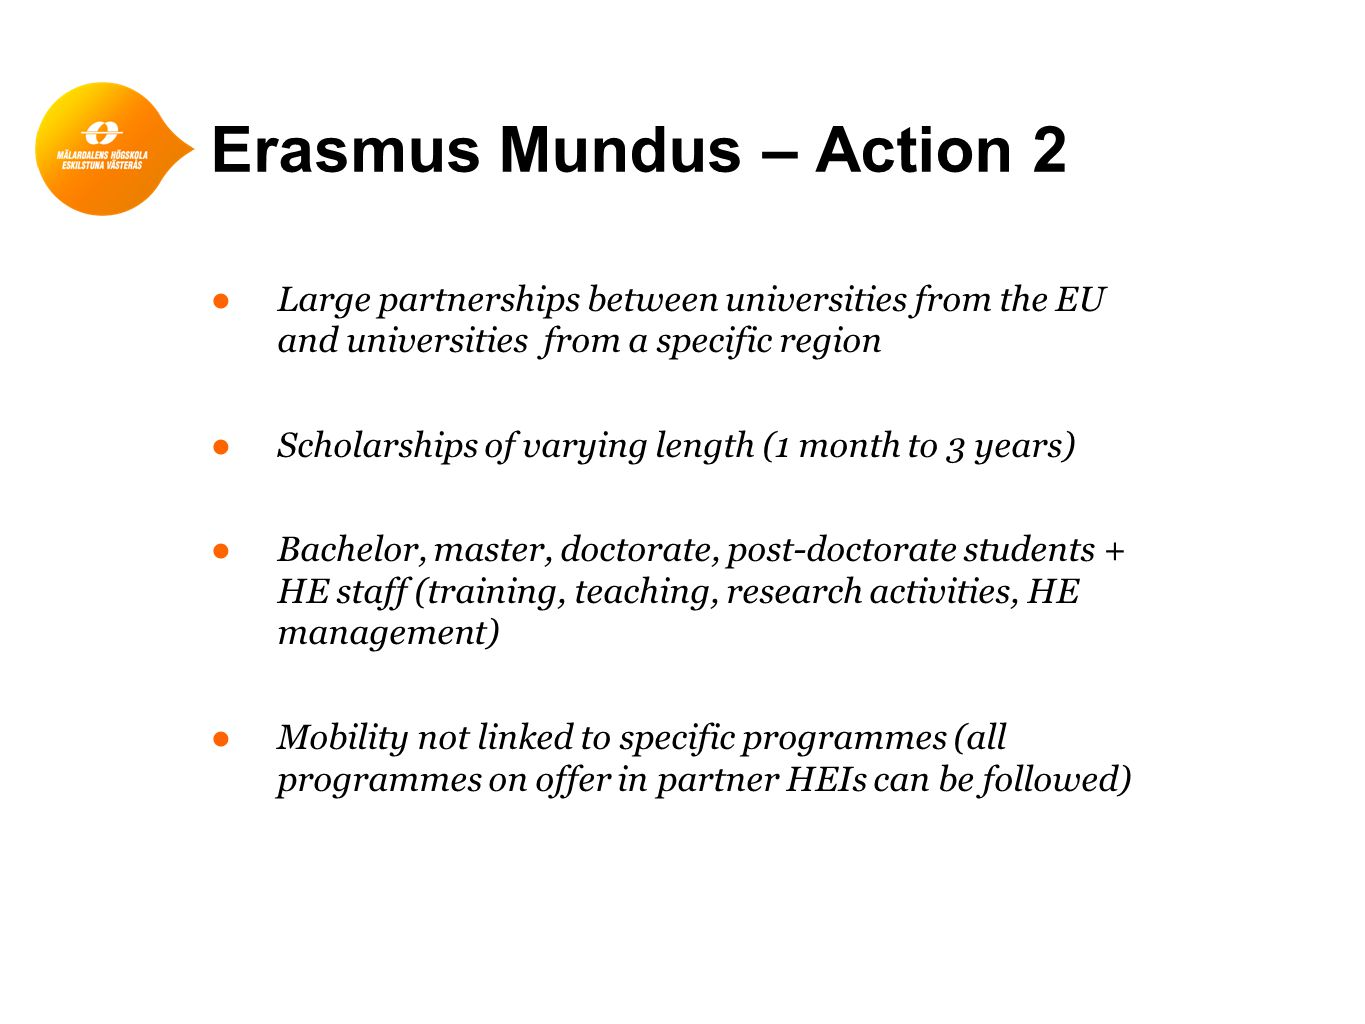 Erasmus Mundus – Action 2 ●Large partnerships between universities from the EU and universities from a specific region ●Scholarships of varying length (1 month to 3 years) ●Bachelor, master, doctorate, post-doctorate students + HE staff (training, teaching, research activities, HE management) ●Mobility not linked to specific programmes (all programmes on offer in partner HEIs can be followed)